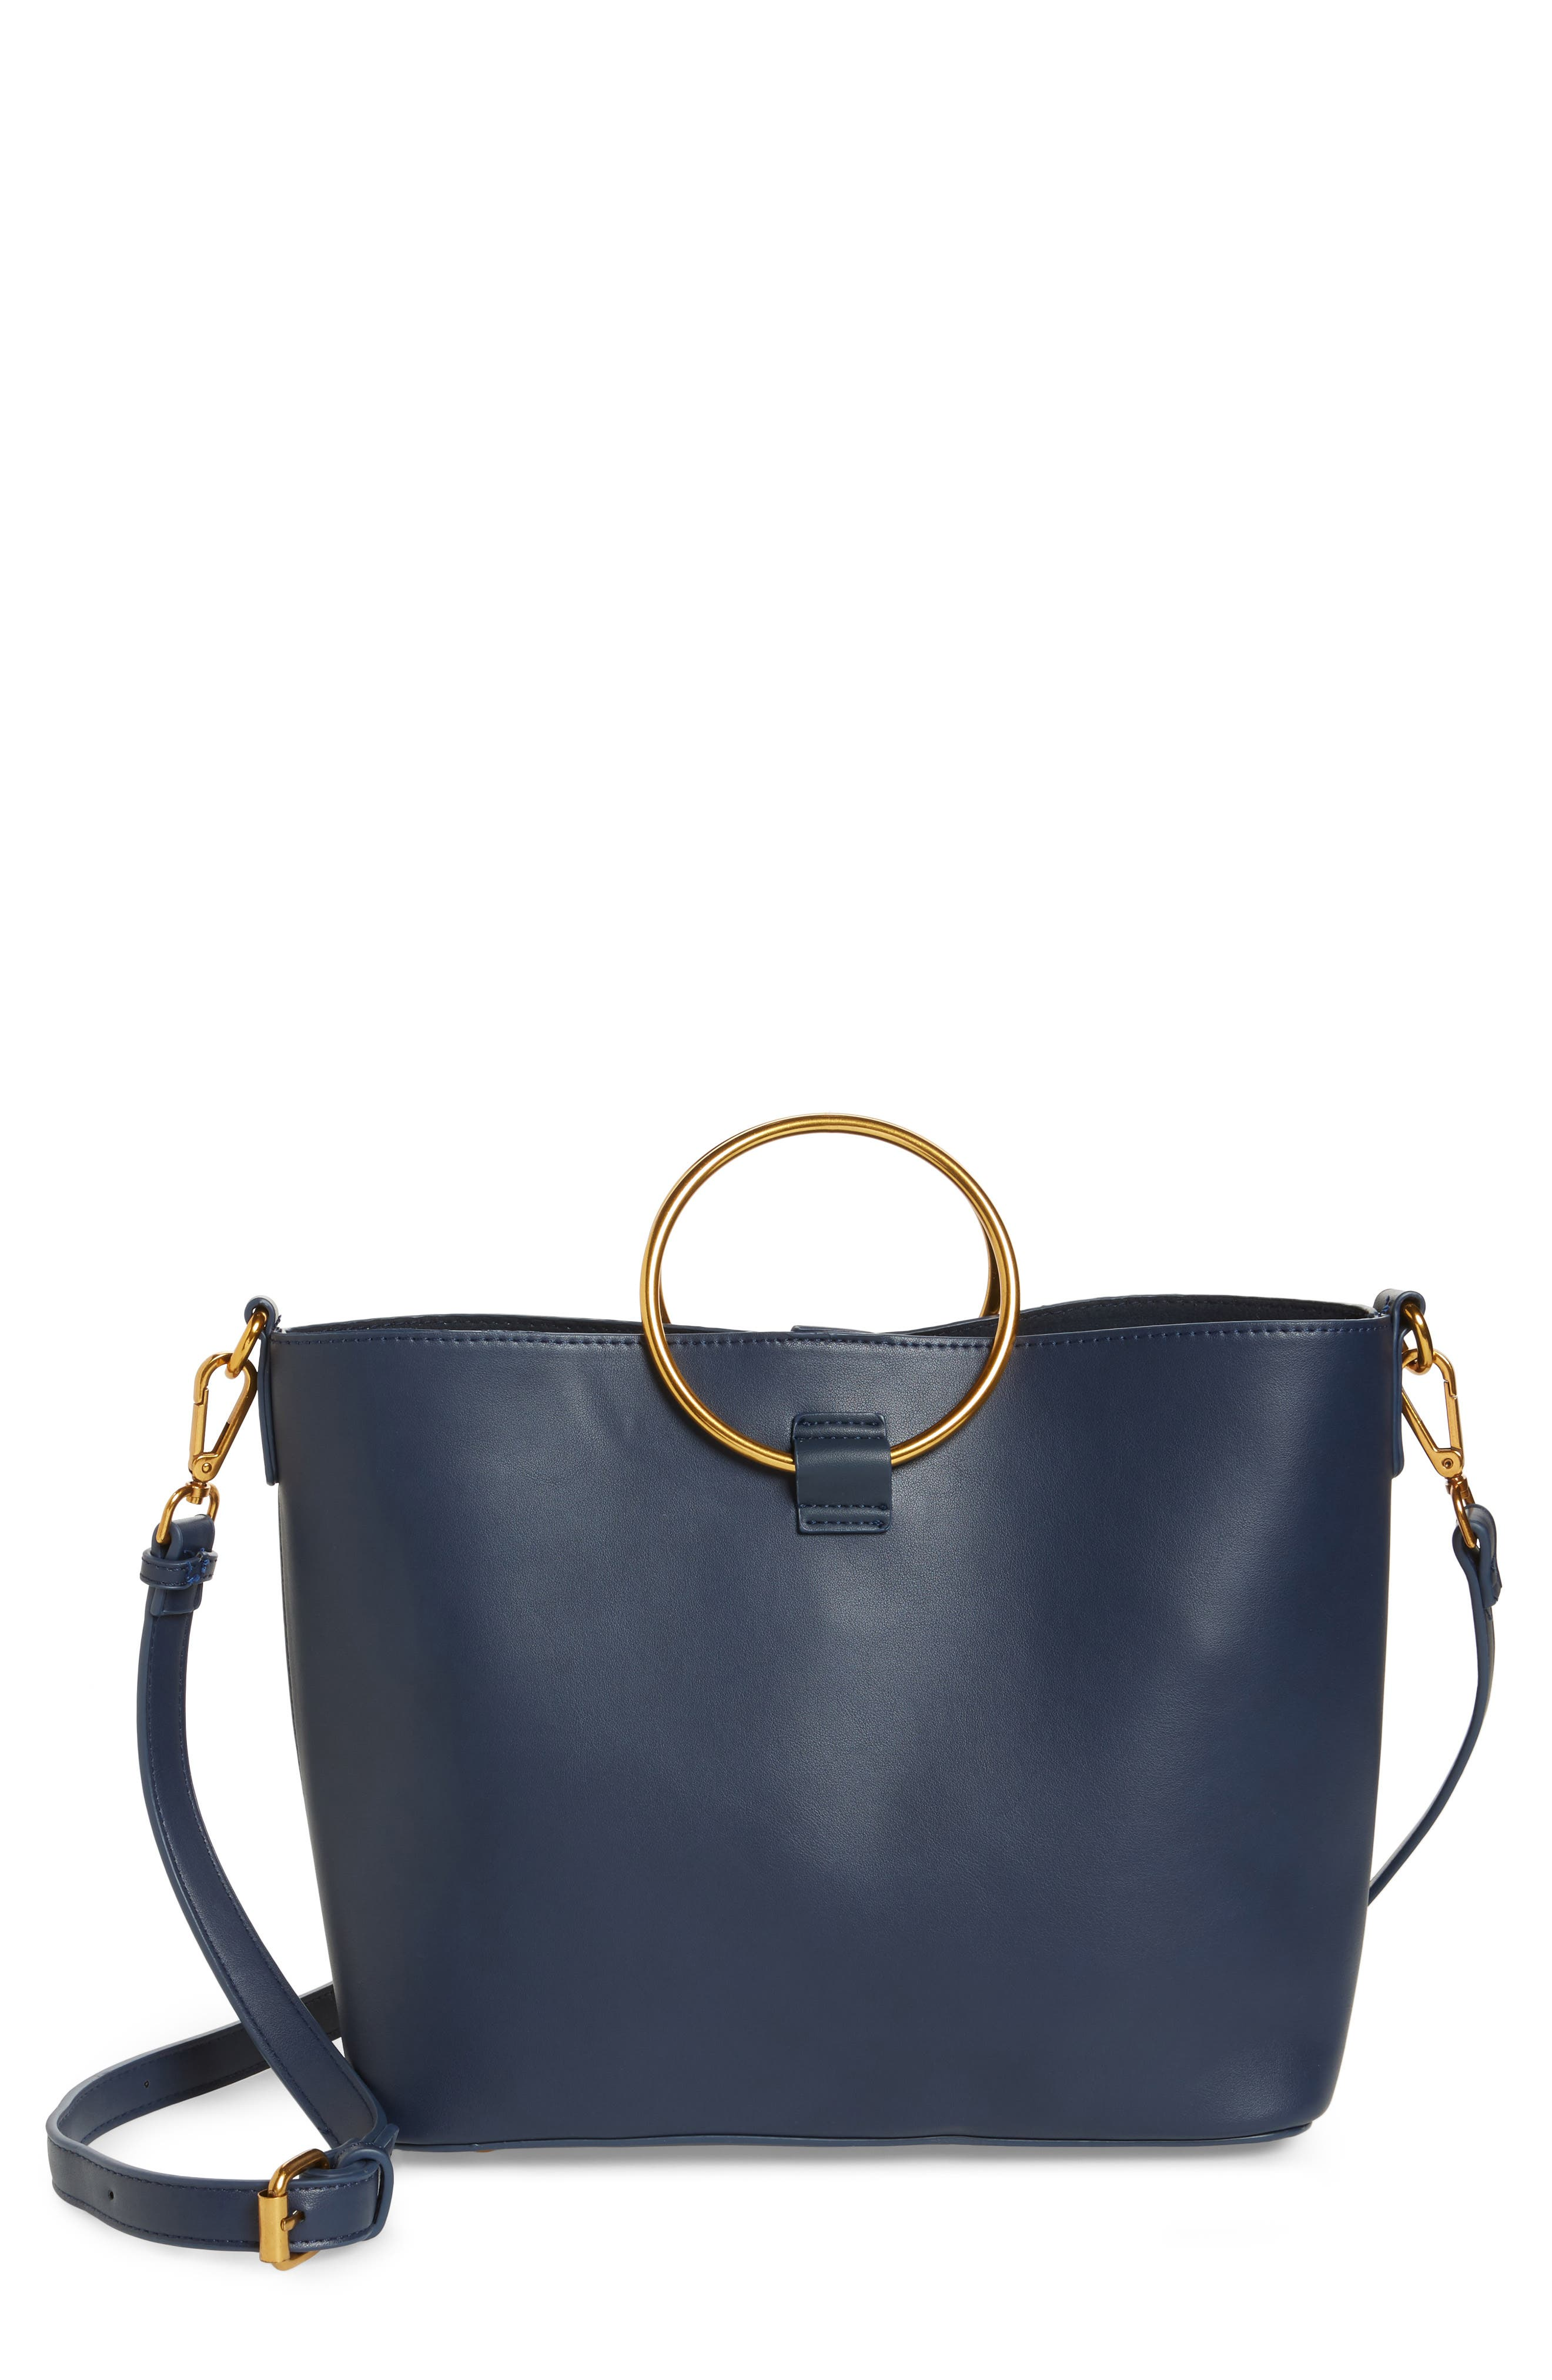 Main Image - Street Level Ring Handle Faux Leather Tote & Zip Pouch